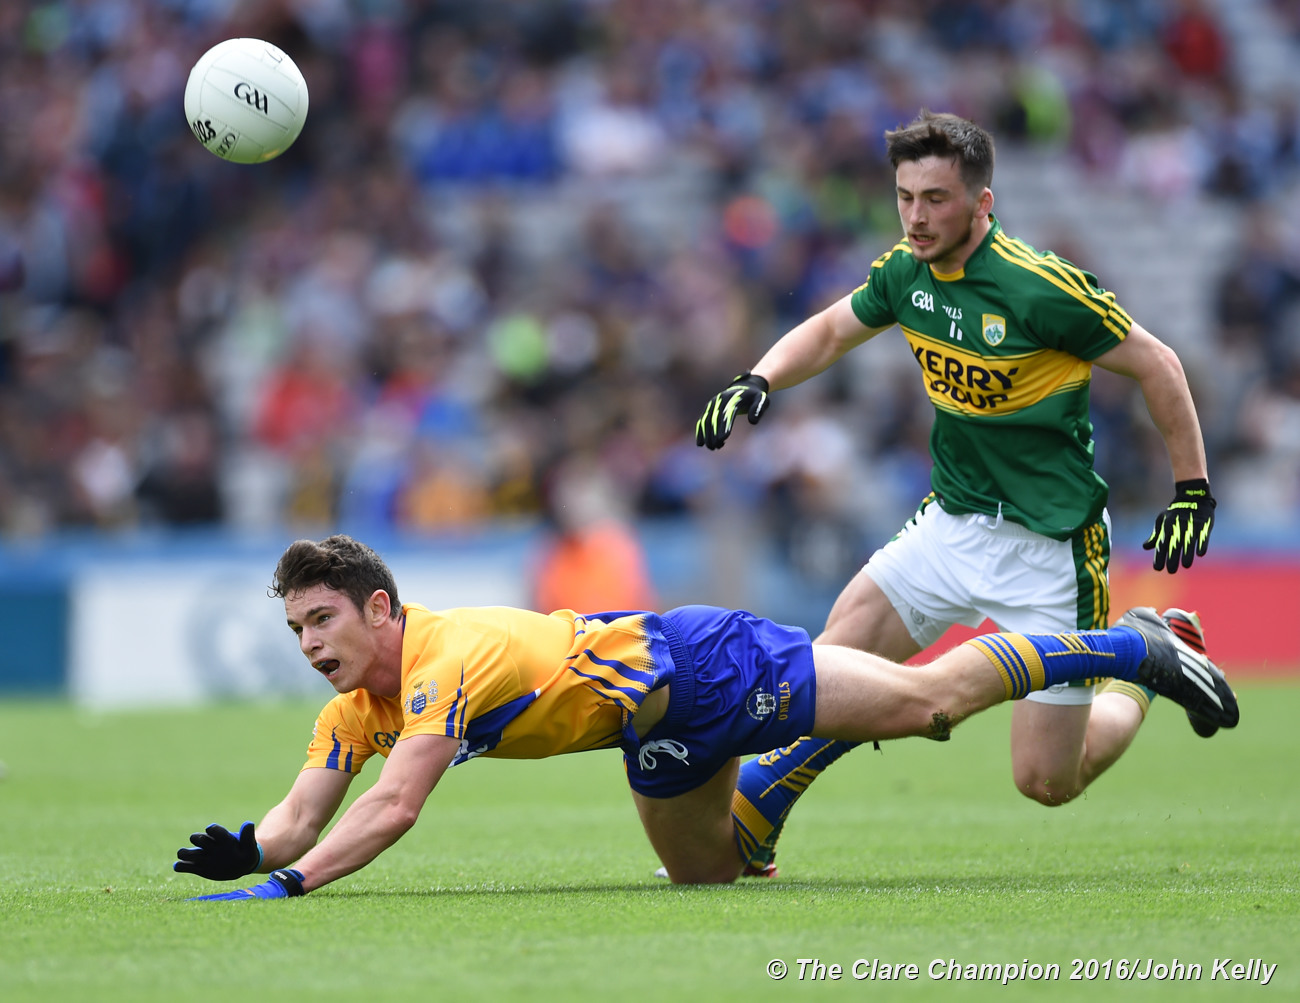 Clare footballers need a morale boost – The Clare Champion